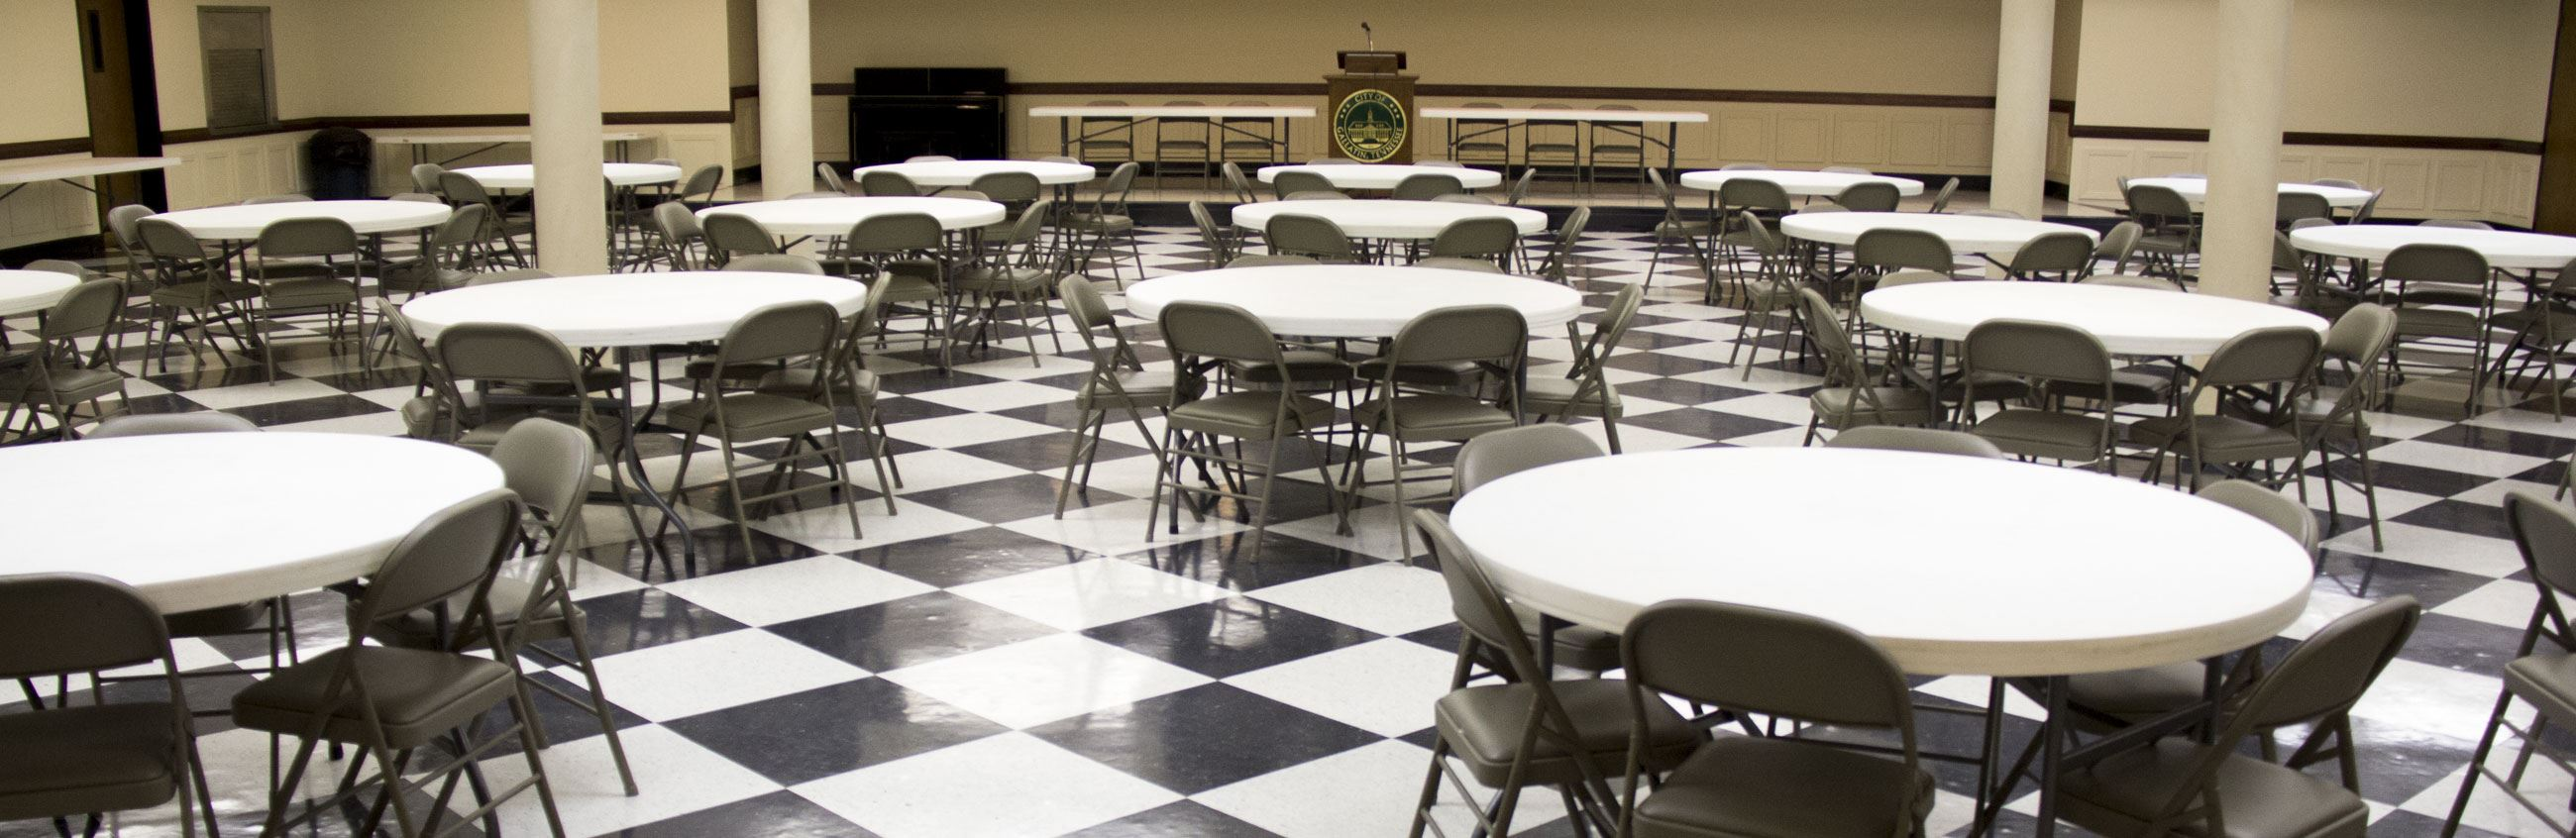 City Hall Dining Room with Checkered Floor